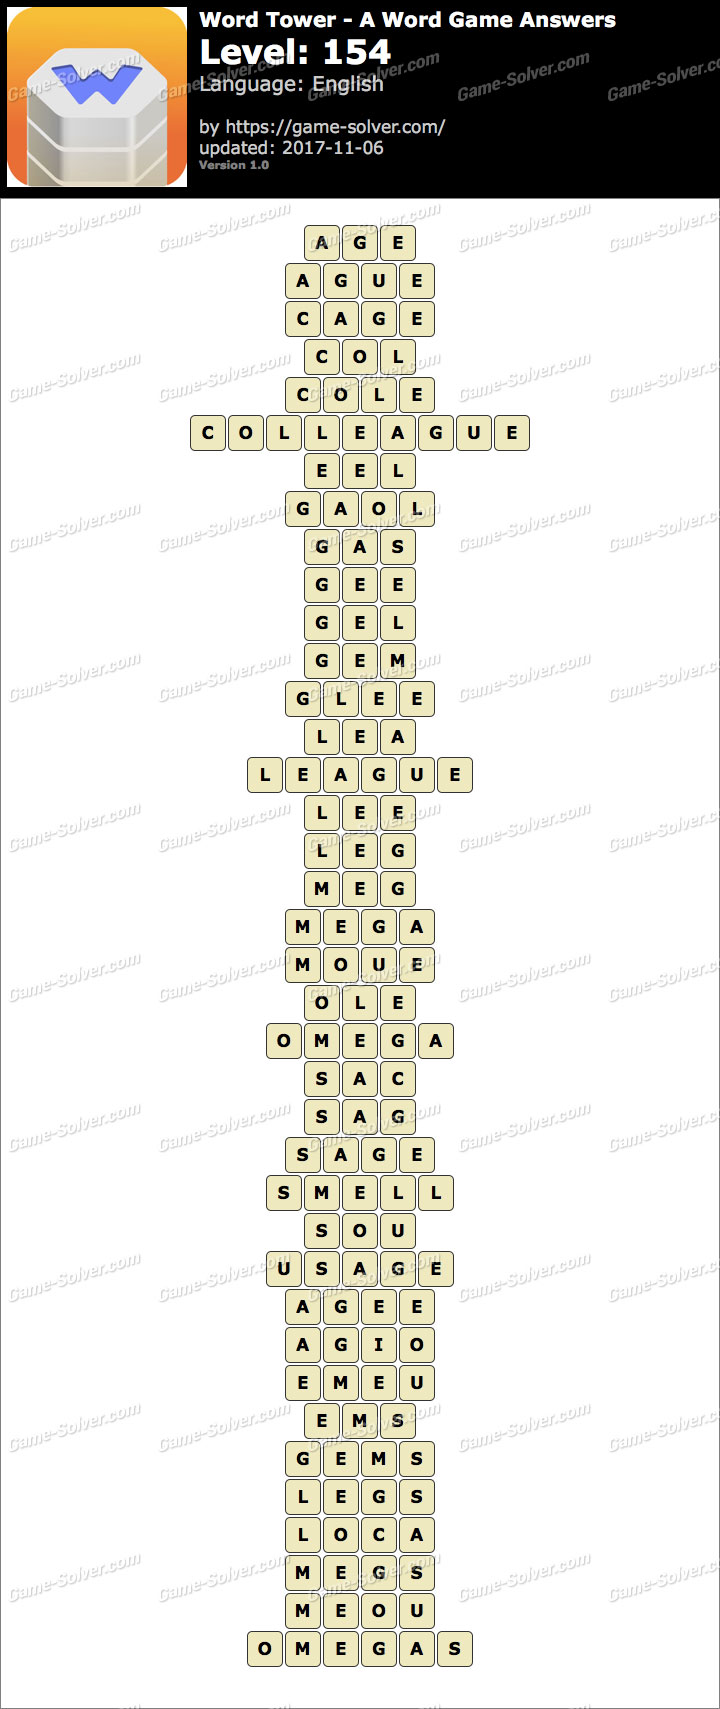 Word Tower Level 154 Answers